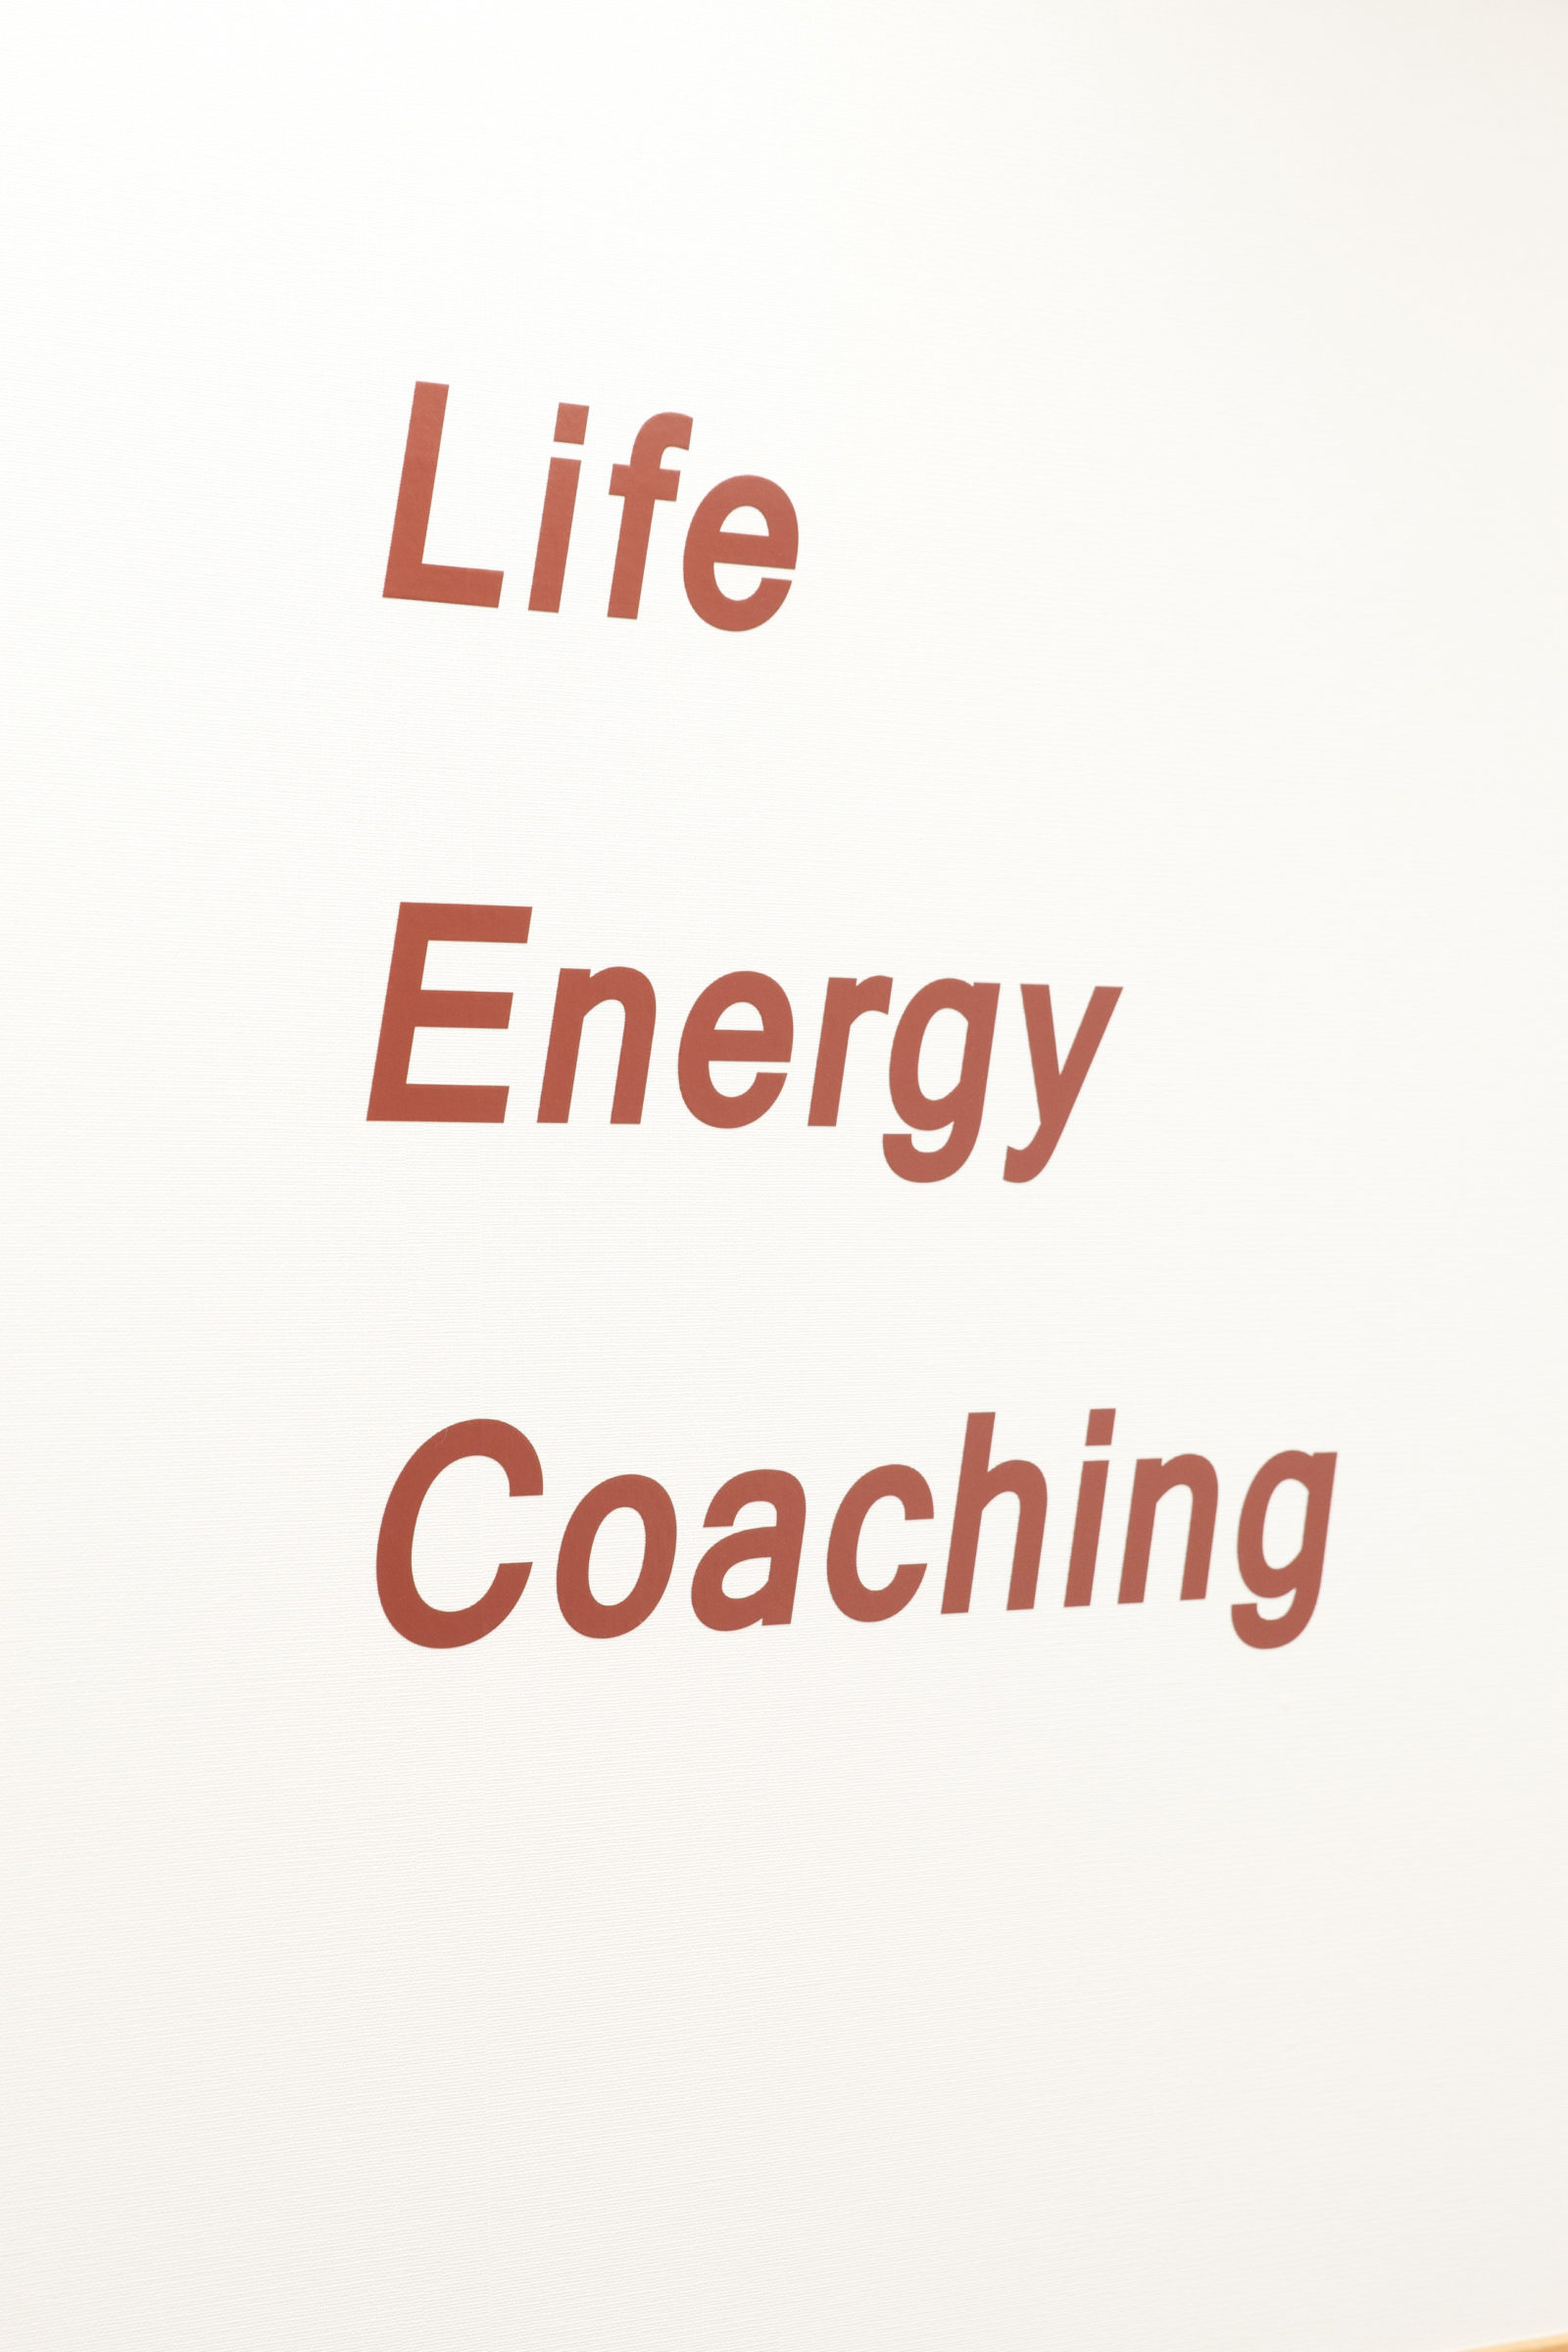 Life Energy Coaching